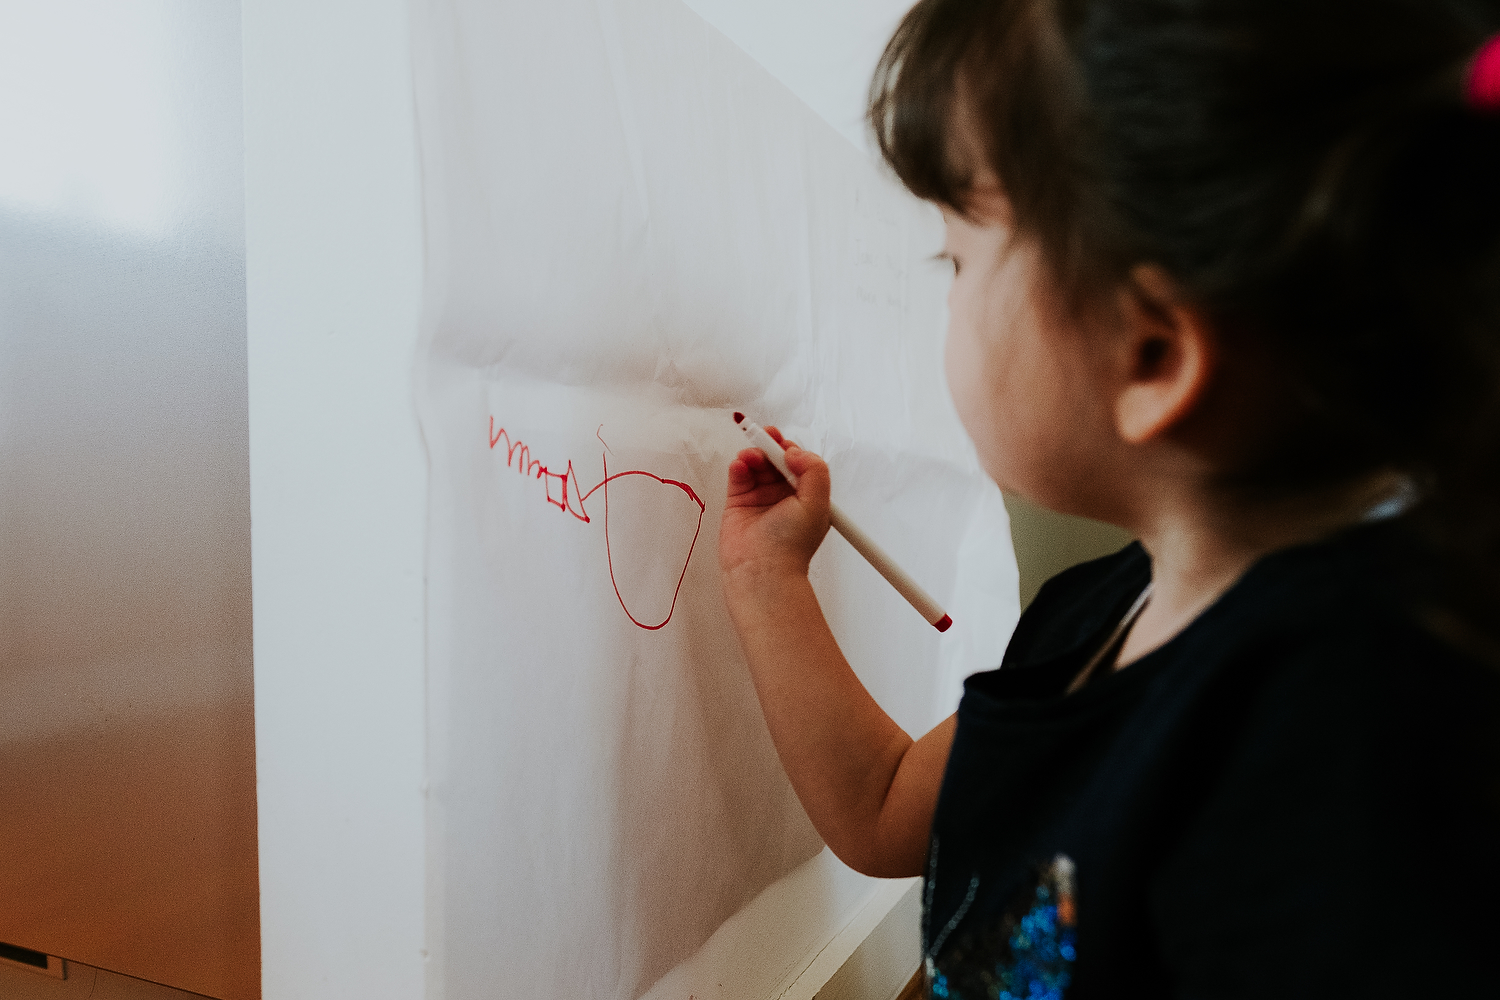 islington family photographer close up shot of toddler girl drawing with red pen on papered wall at home